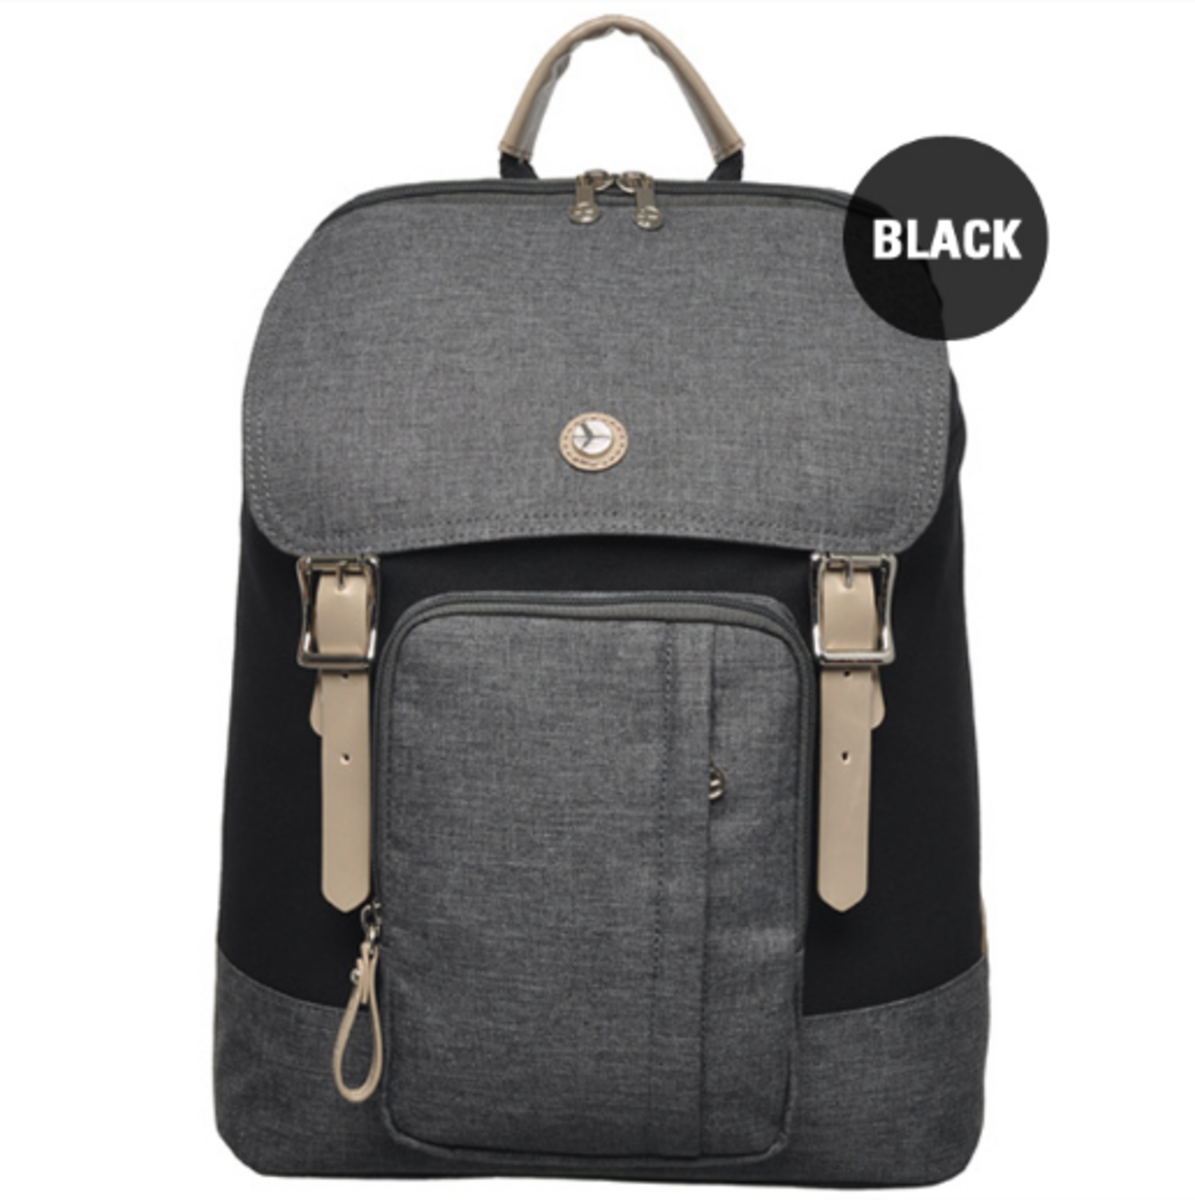 NEW-MILD BACKPACK_BK_P00000IH